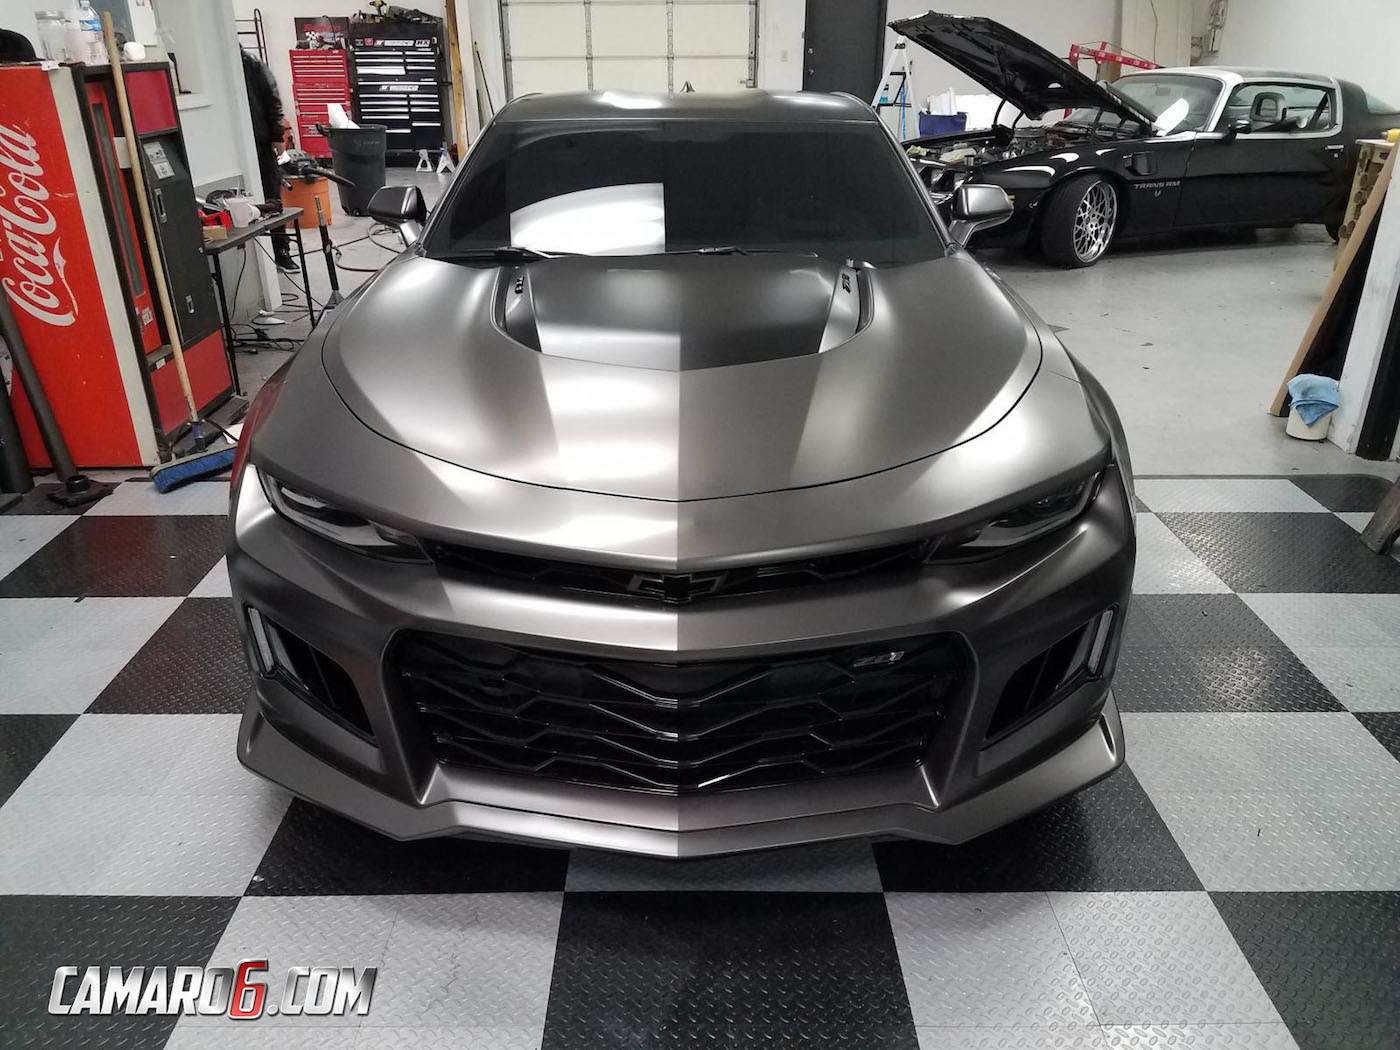 2017 Camaro ZL1 Gets Satin Nero Wrap, Extreme Window Tint for Murdered Out Look - autoevolution